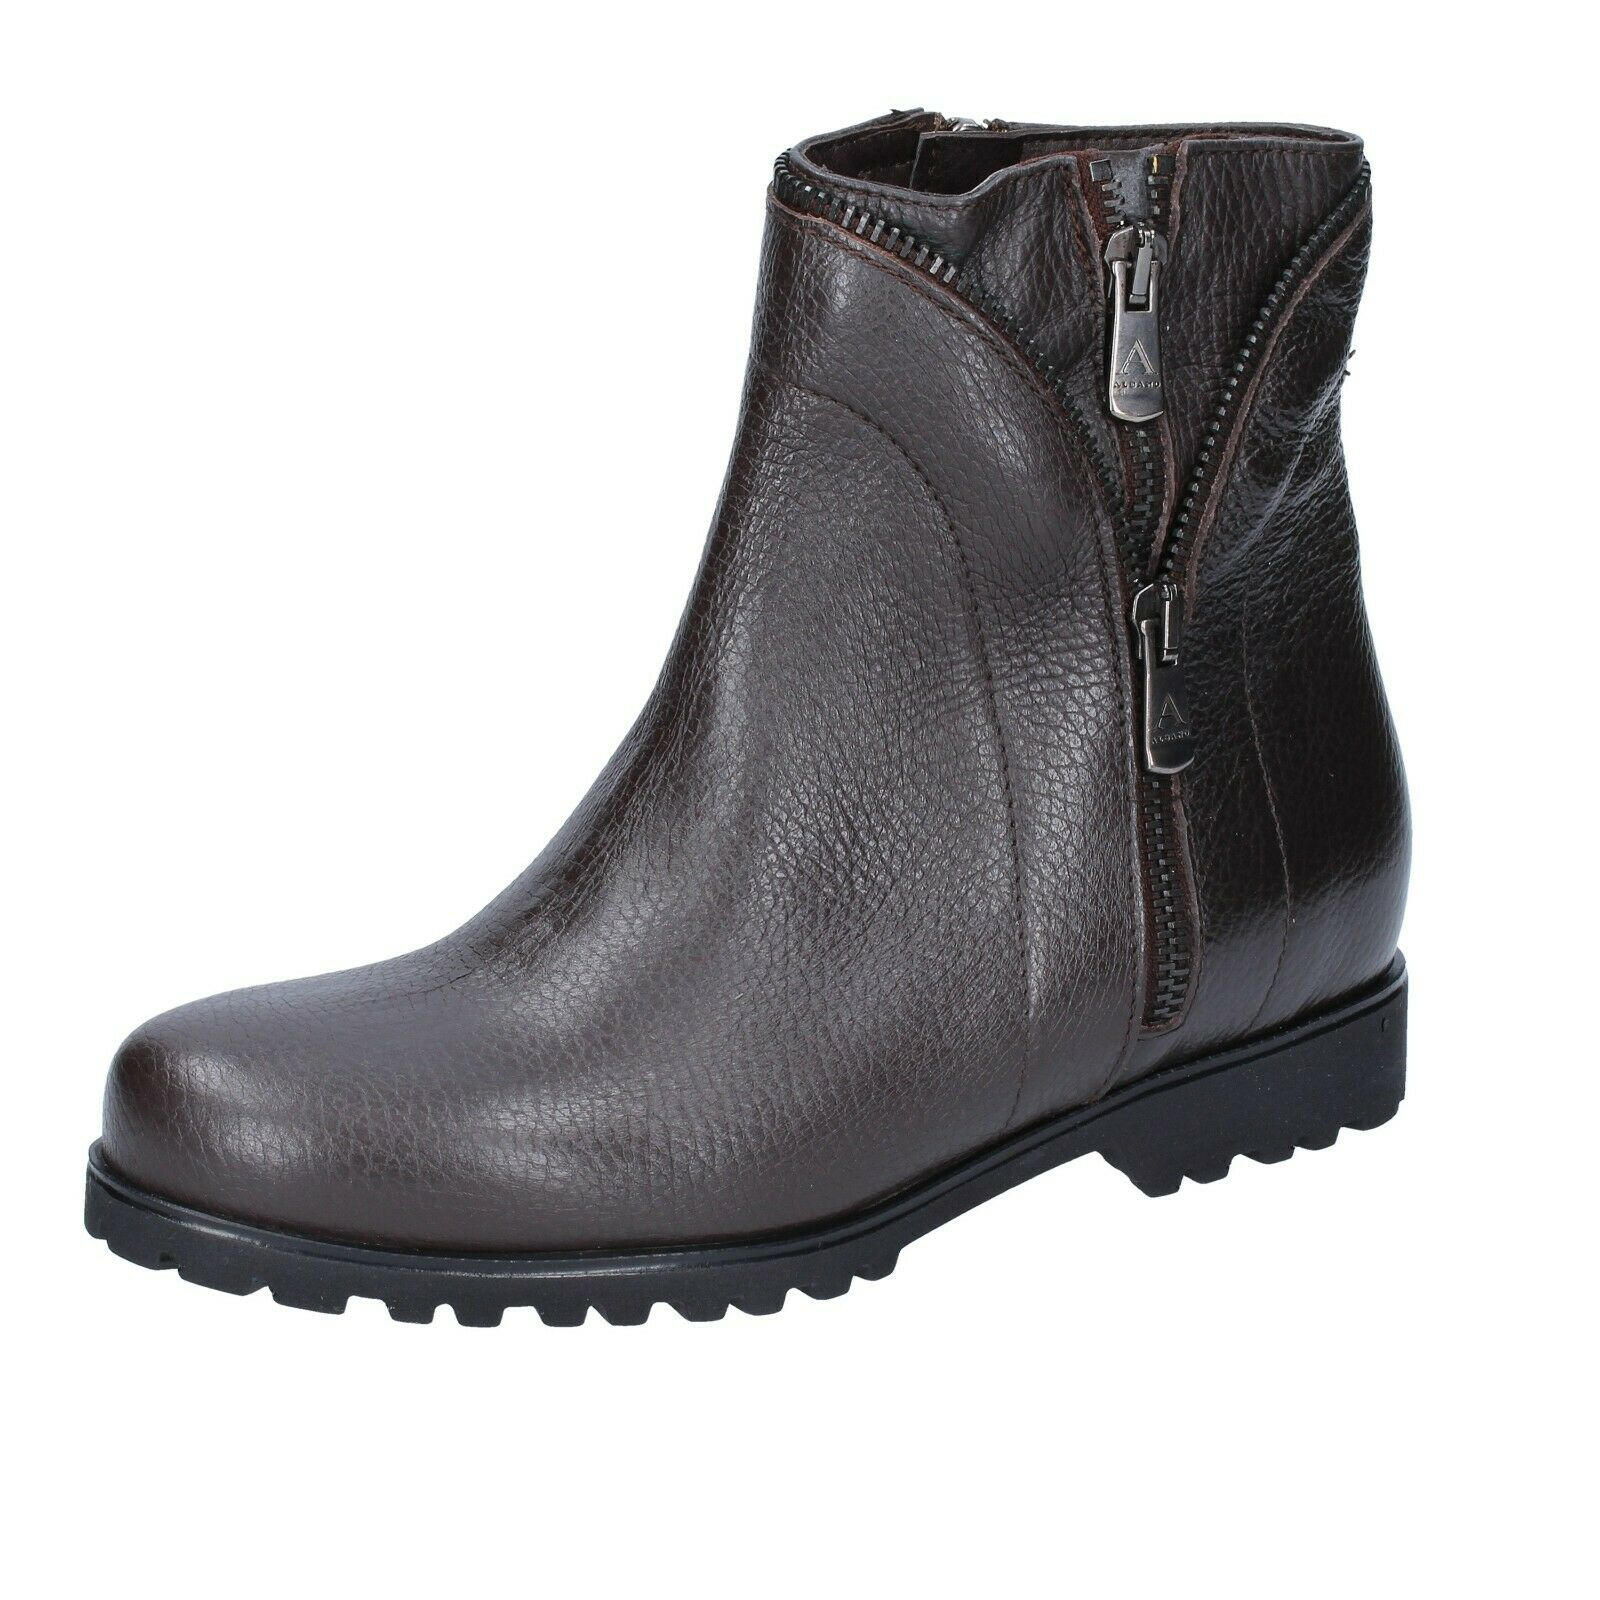 Womens shoes ALBANO 6 () ankle boots brown leather BS899-39